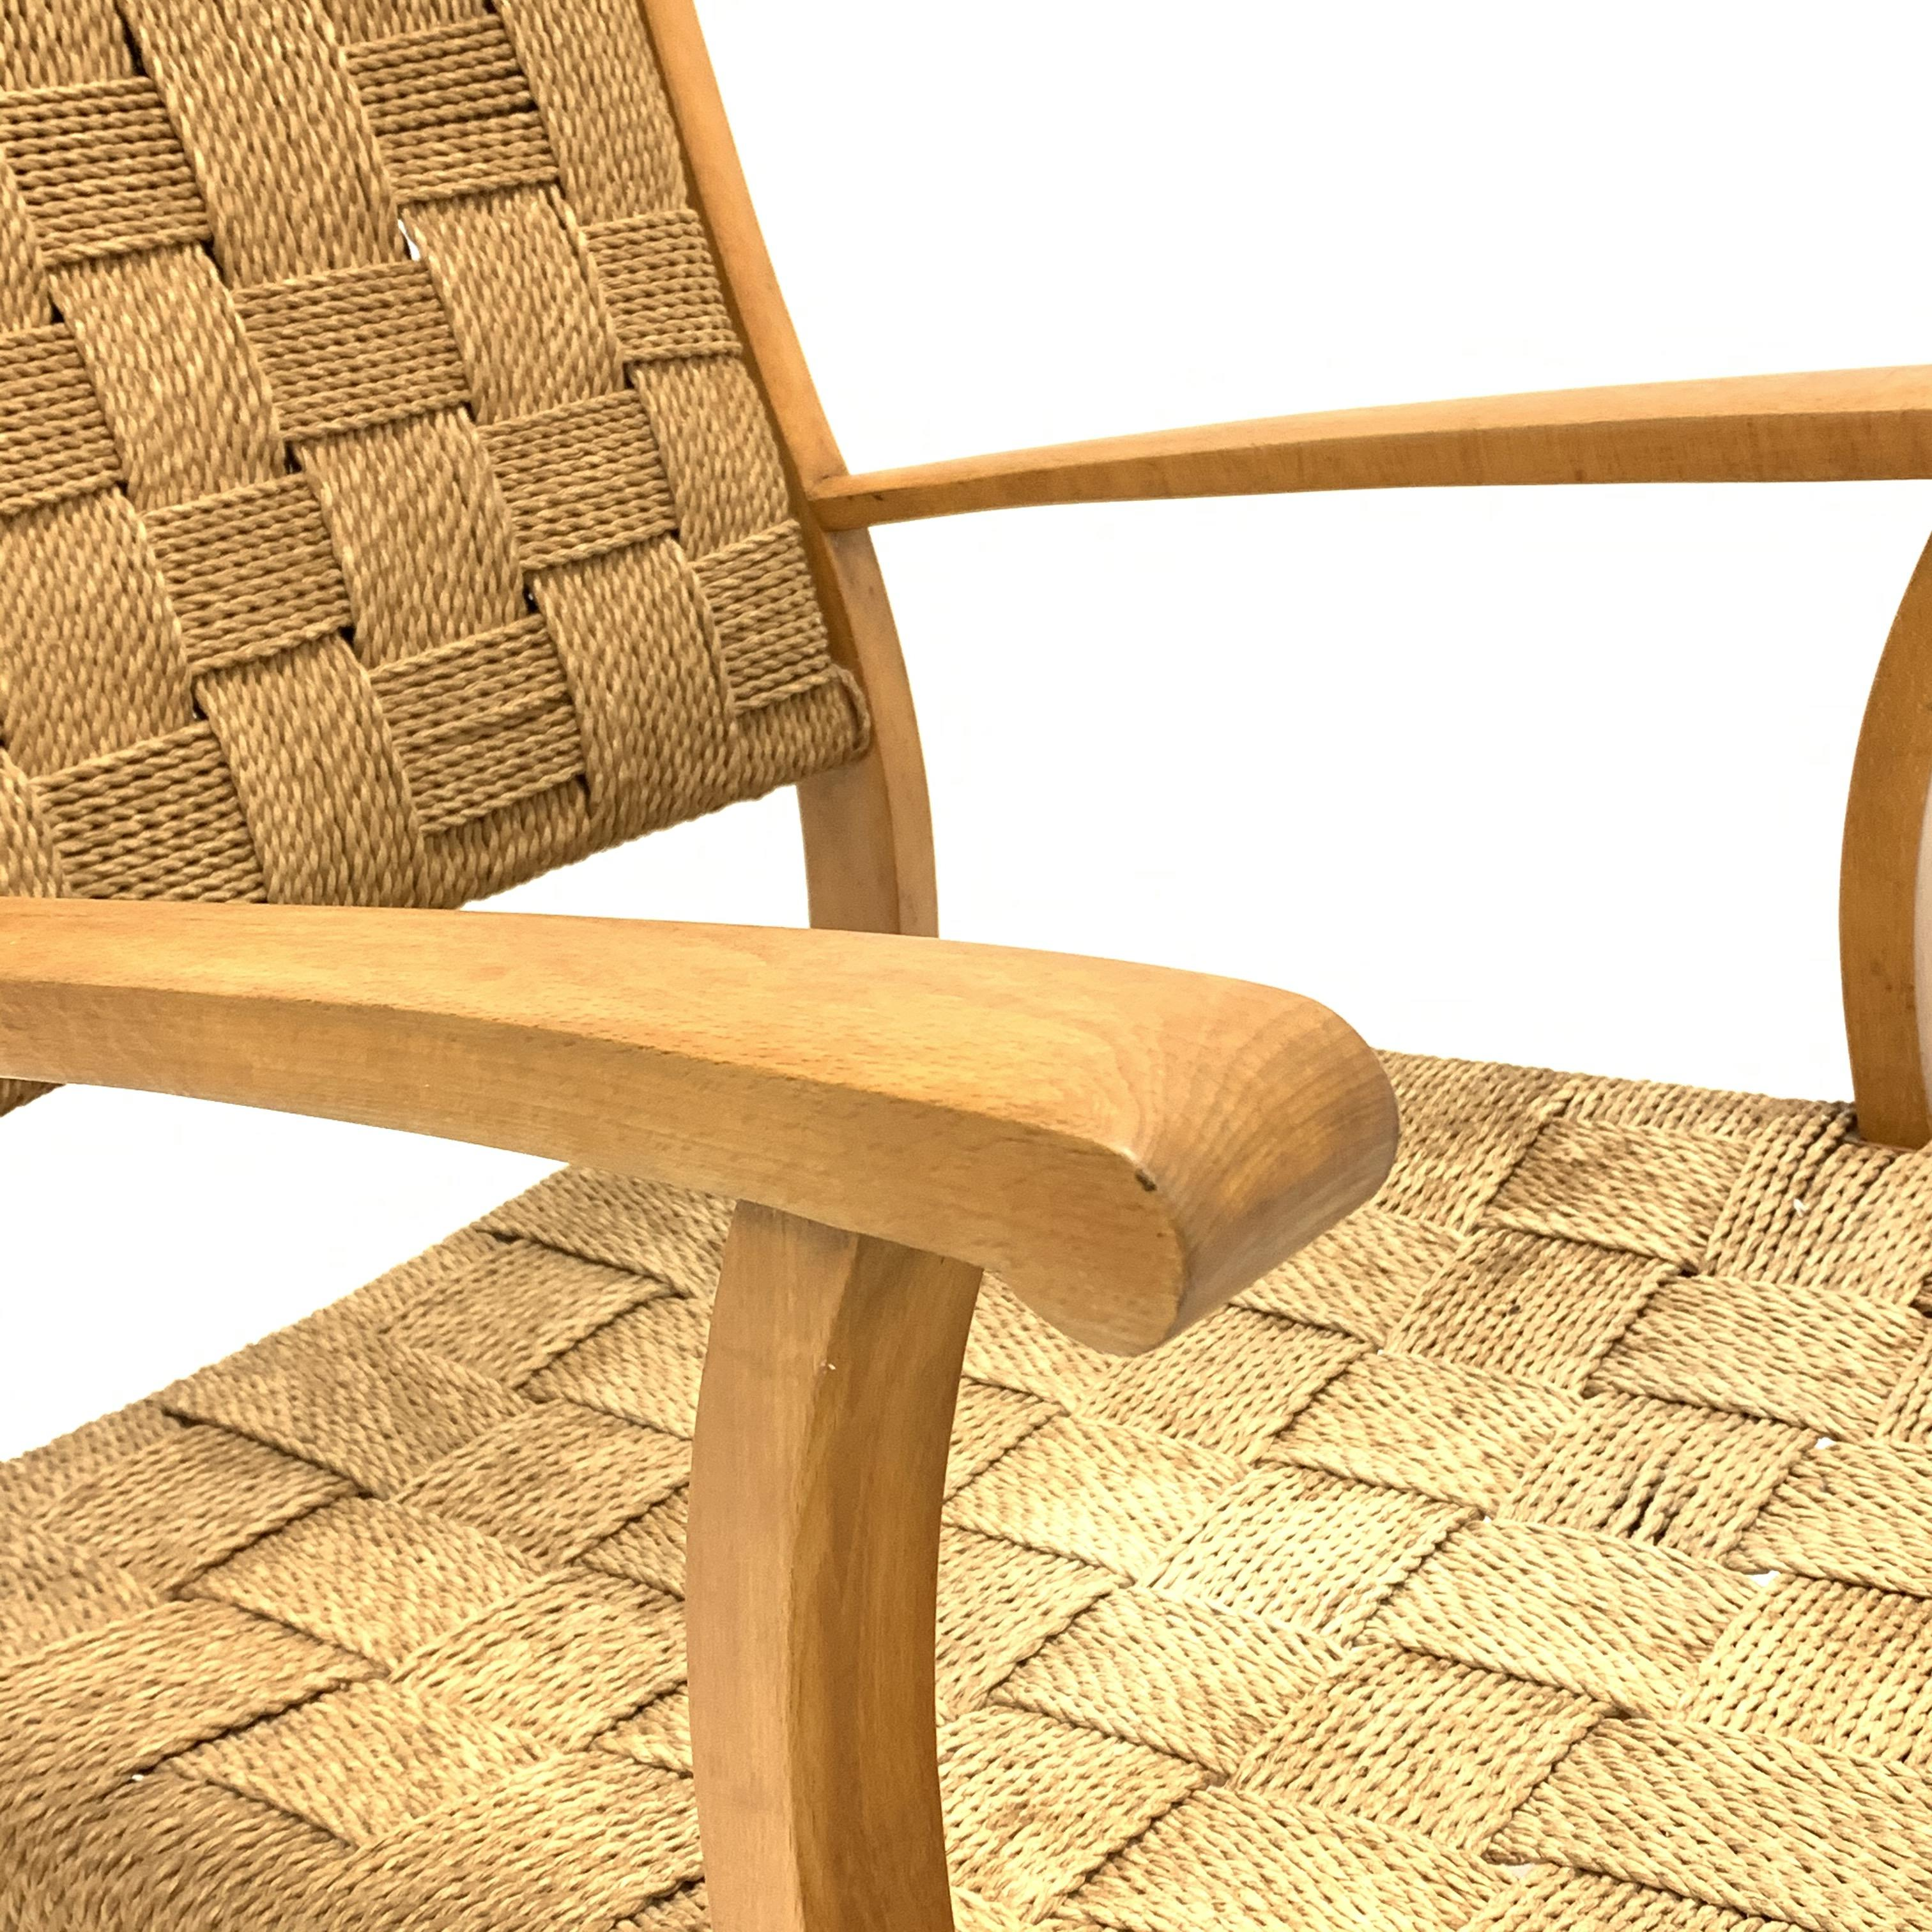 Attributed to Frits Schlegel - Danish beech and cord lounge chair, circa. 1940s, W60cm - Image 3 of 5